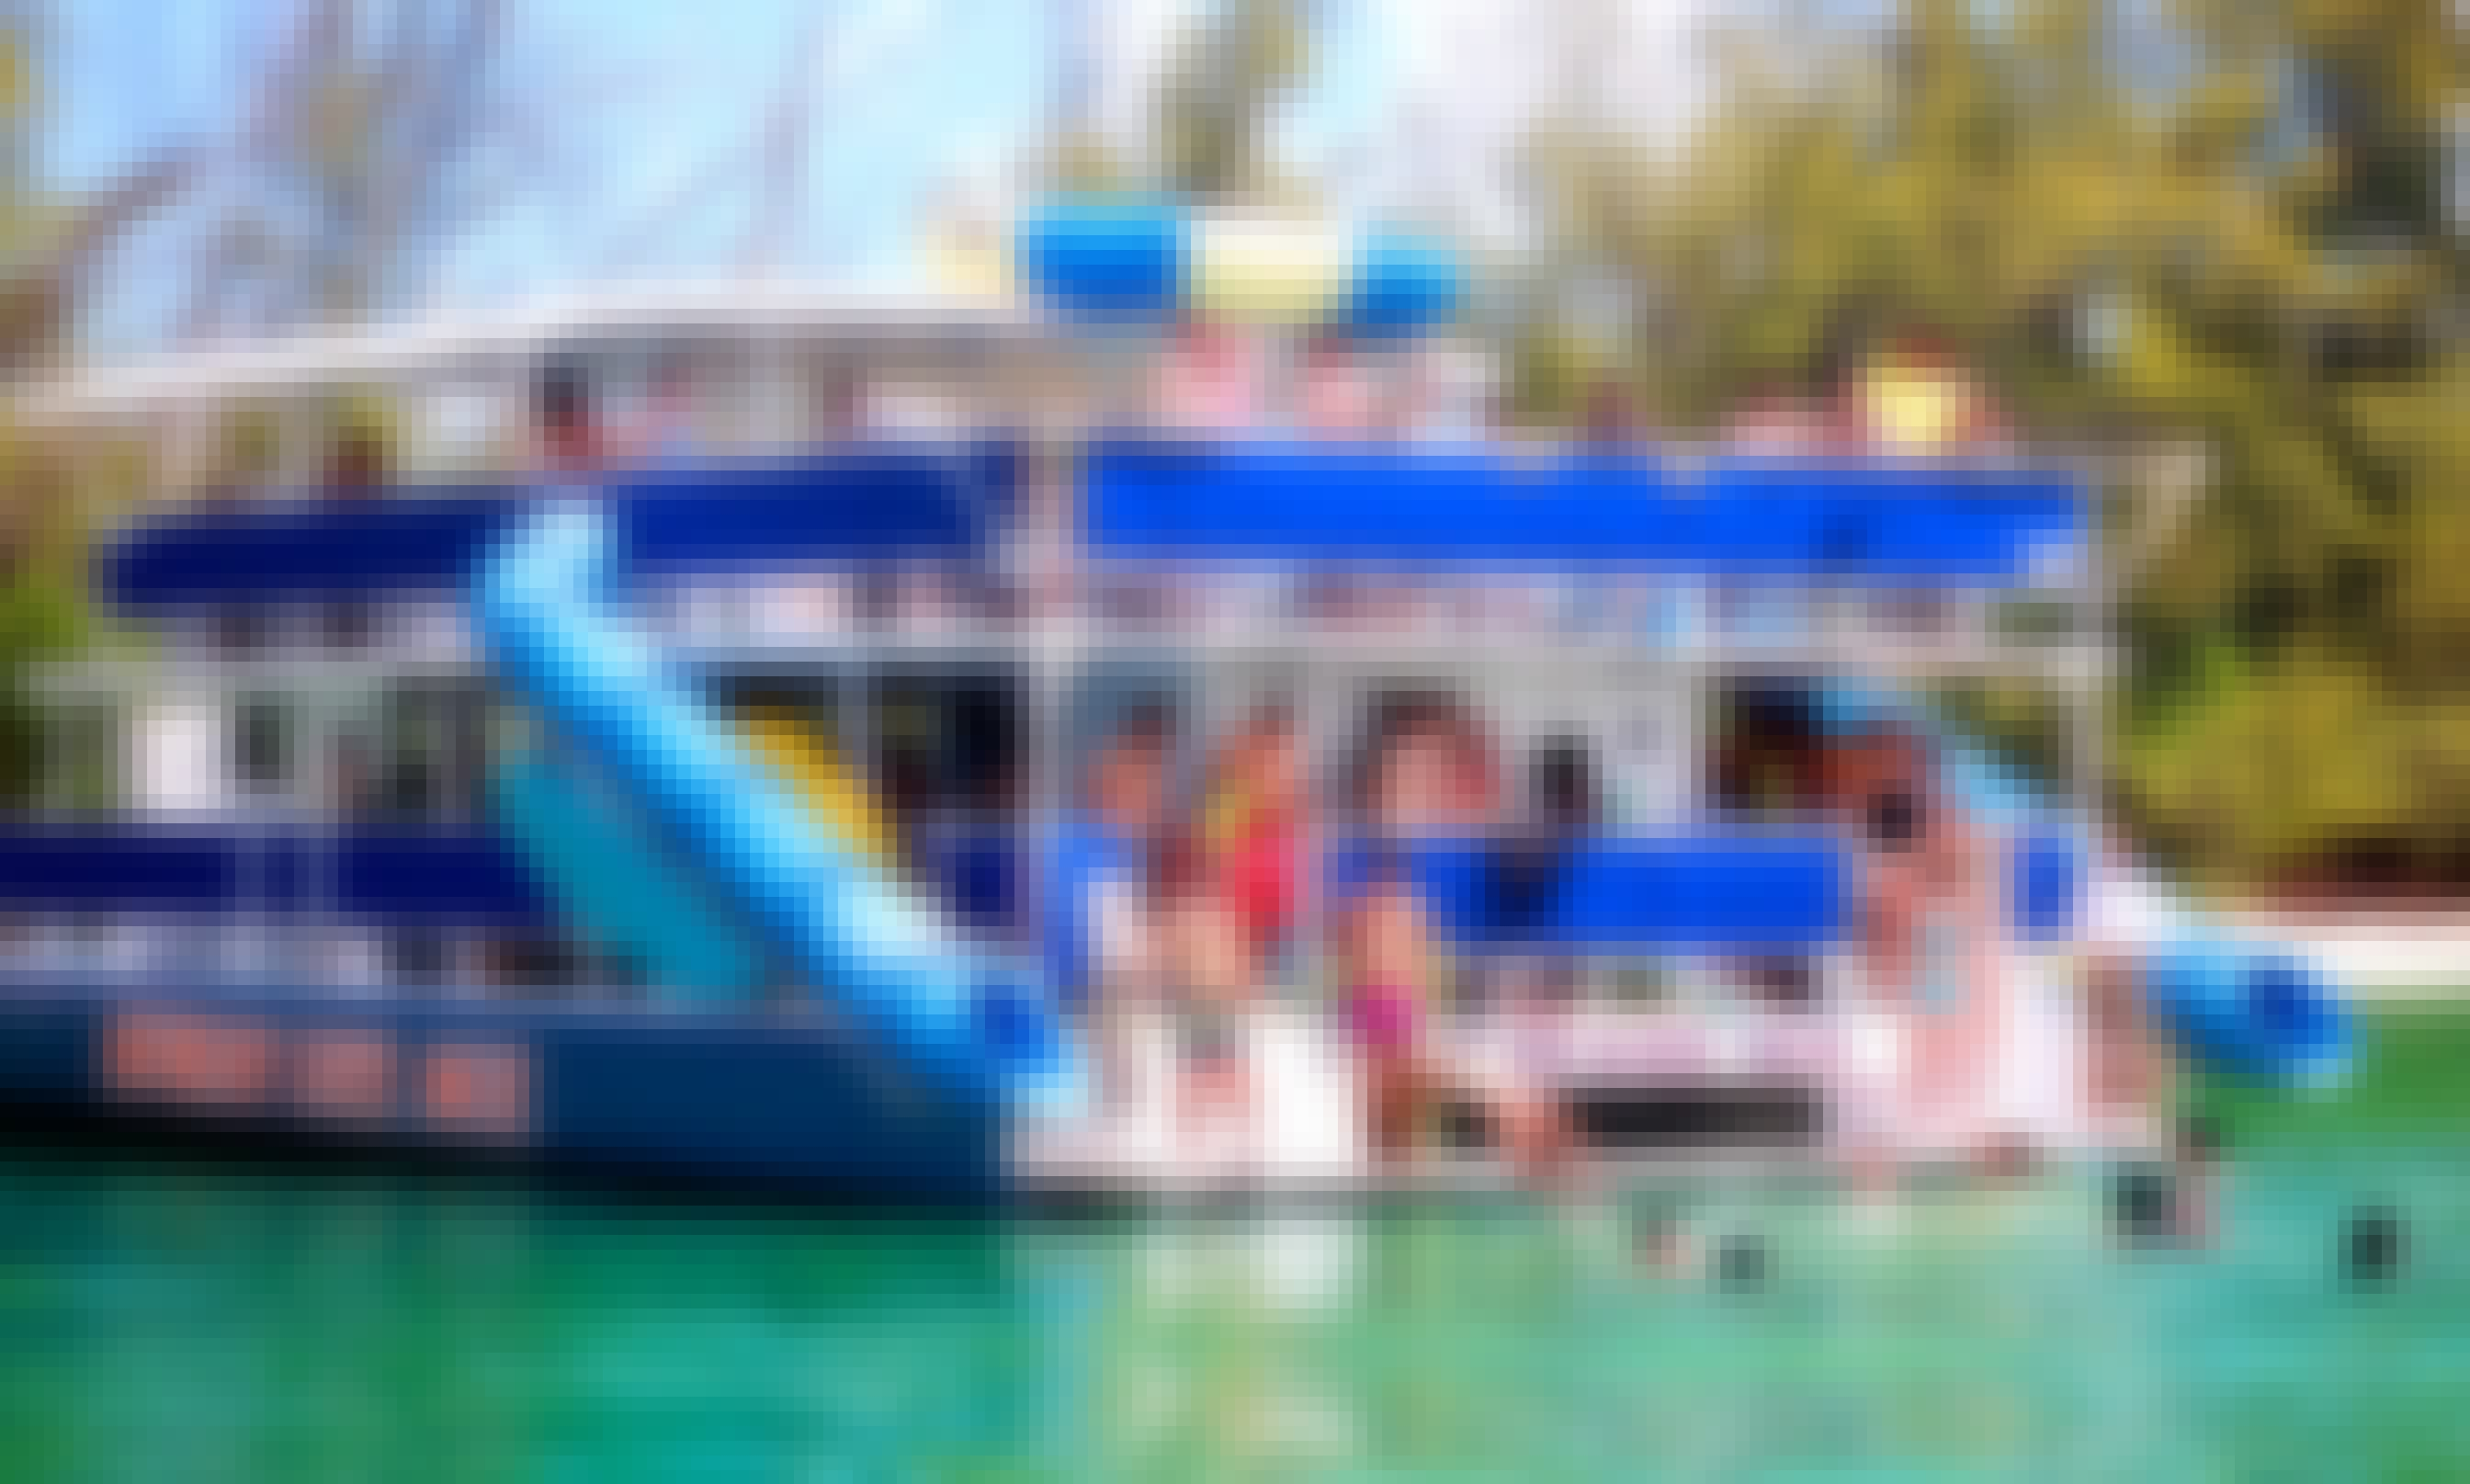 Join Us For A Great Swim Cruise On A Power Catamaran With Water Slides In Miami, Florida